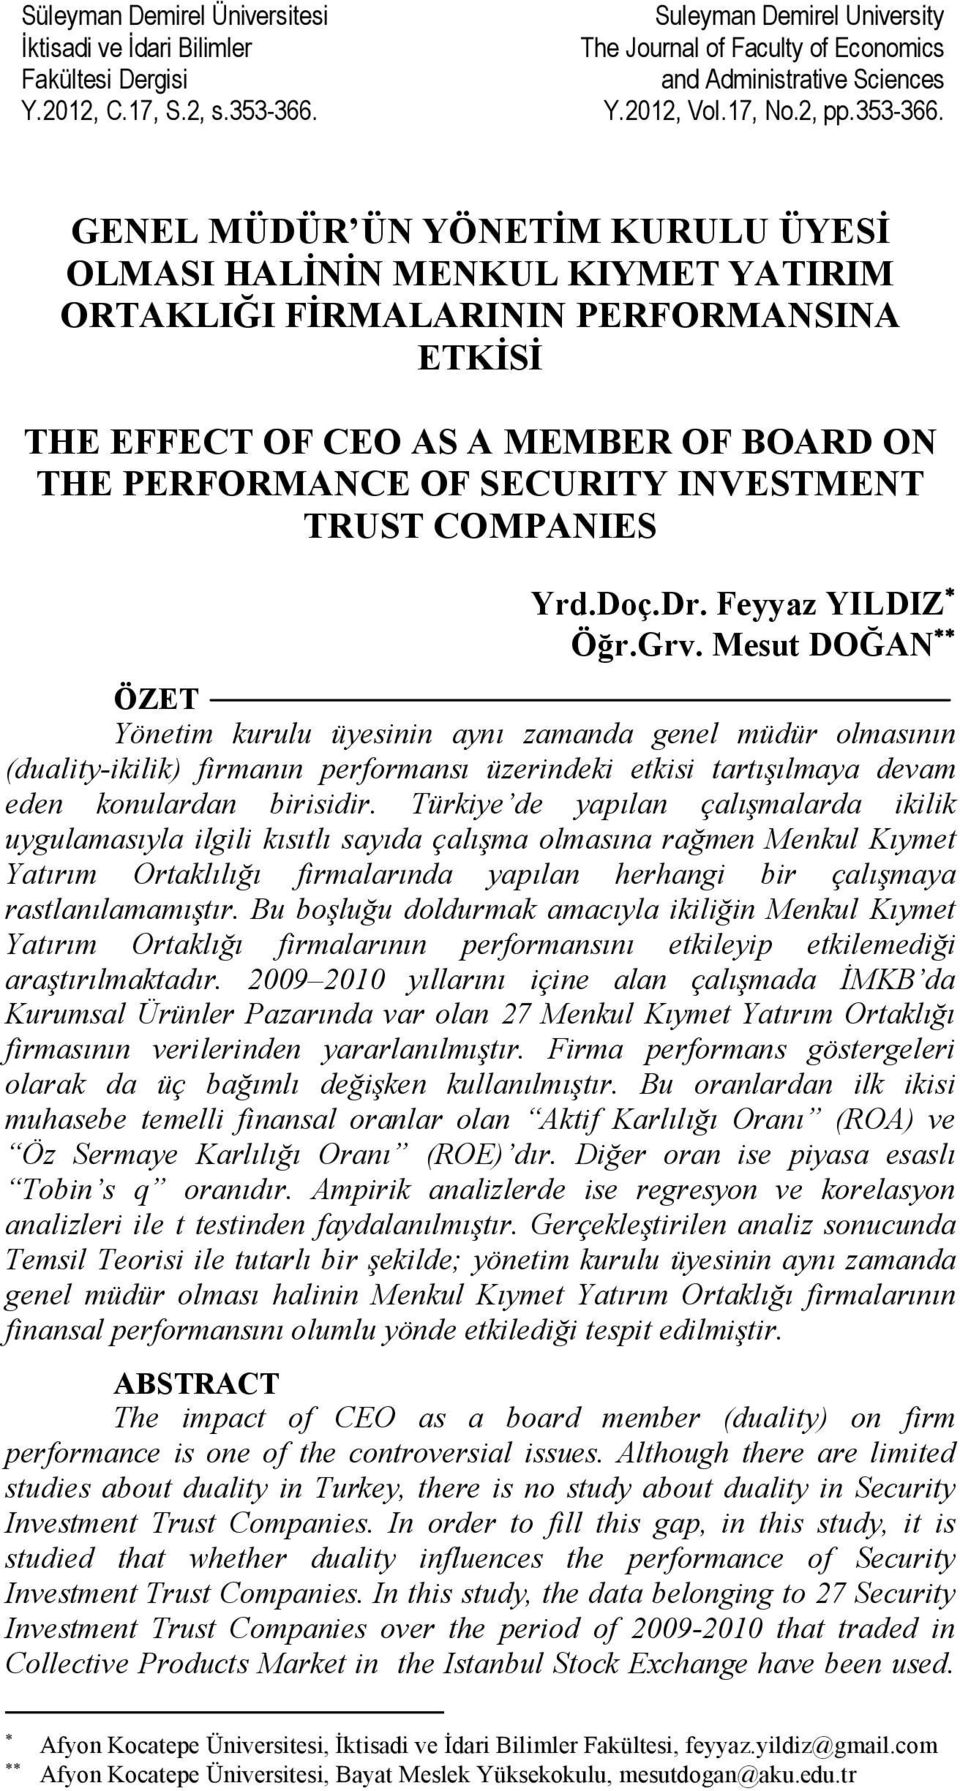 GENEL MÜDÜR ÜN YÖNETİM KURULU ÜYESİ OLMASI HALİNİN MENKUL KIYMET YATIRIM ORTAKLIĞI FİRMALARININ PERFORMANSINA ETKİSİ THE EFFECT OF CEO AS A MEMBER OF BOARD ON THE PERFORMANCE OF SECURITY INVESTMENT